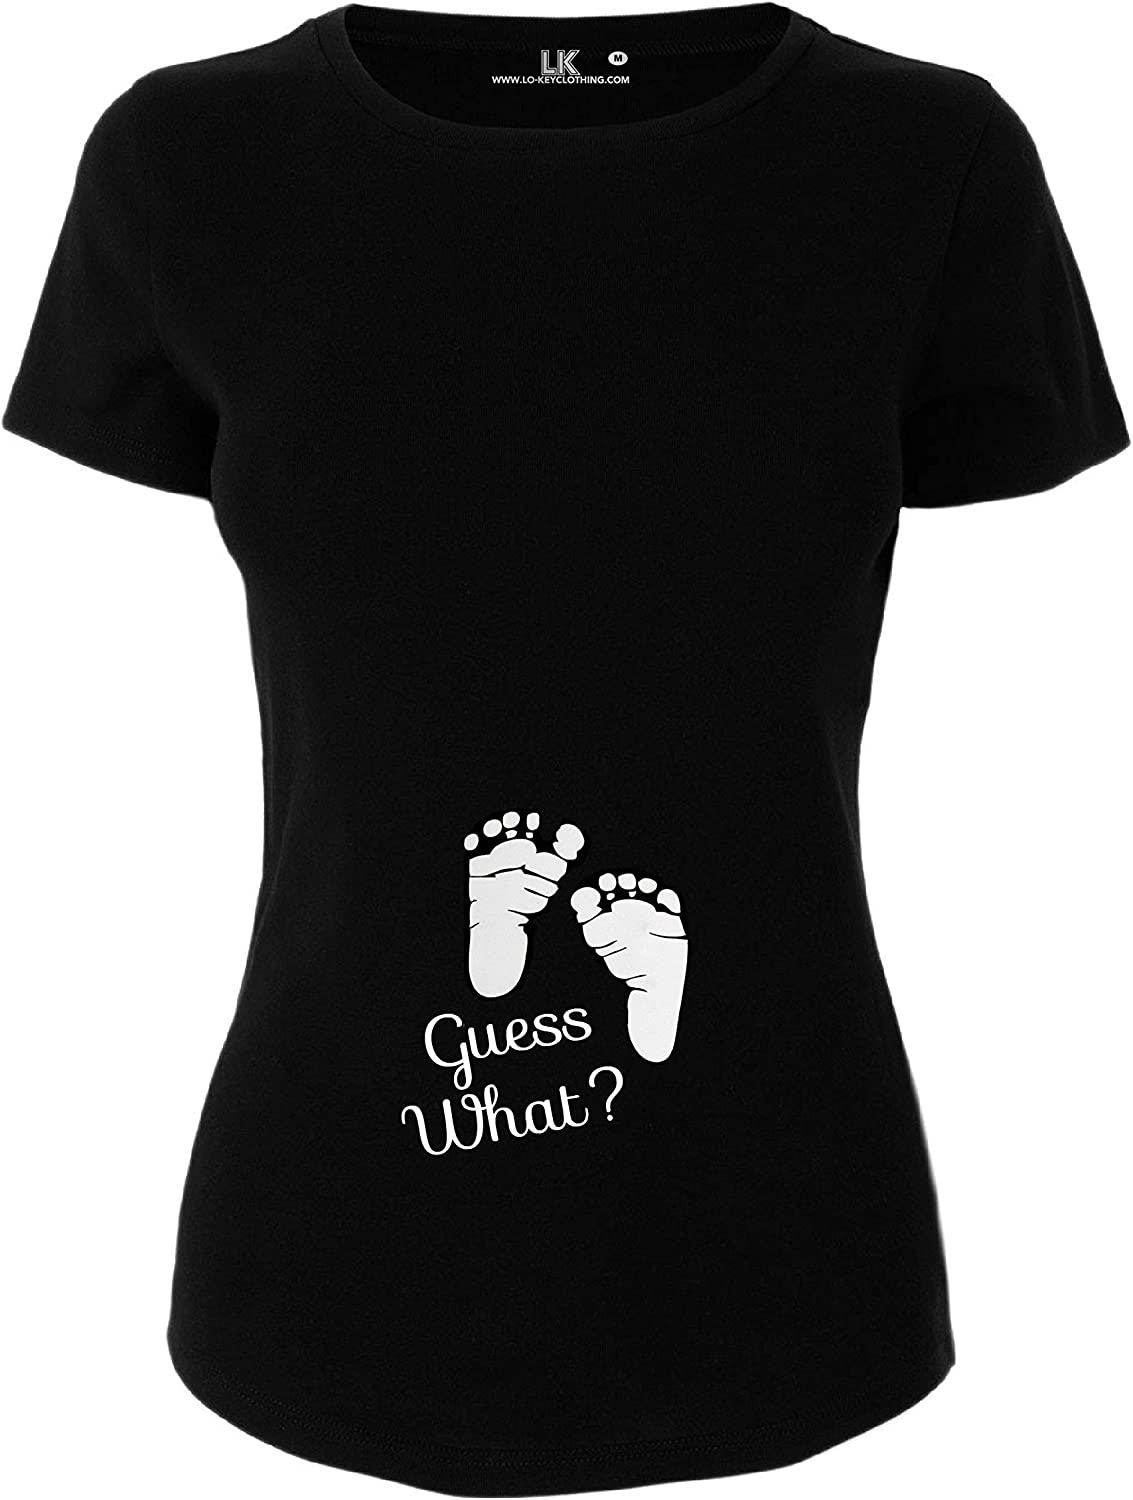 T//Shirt Pregnancy Announcement Top Tee Maternity Guess What